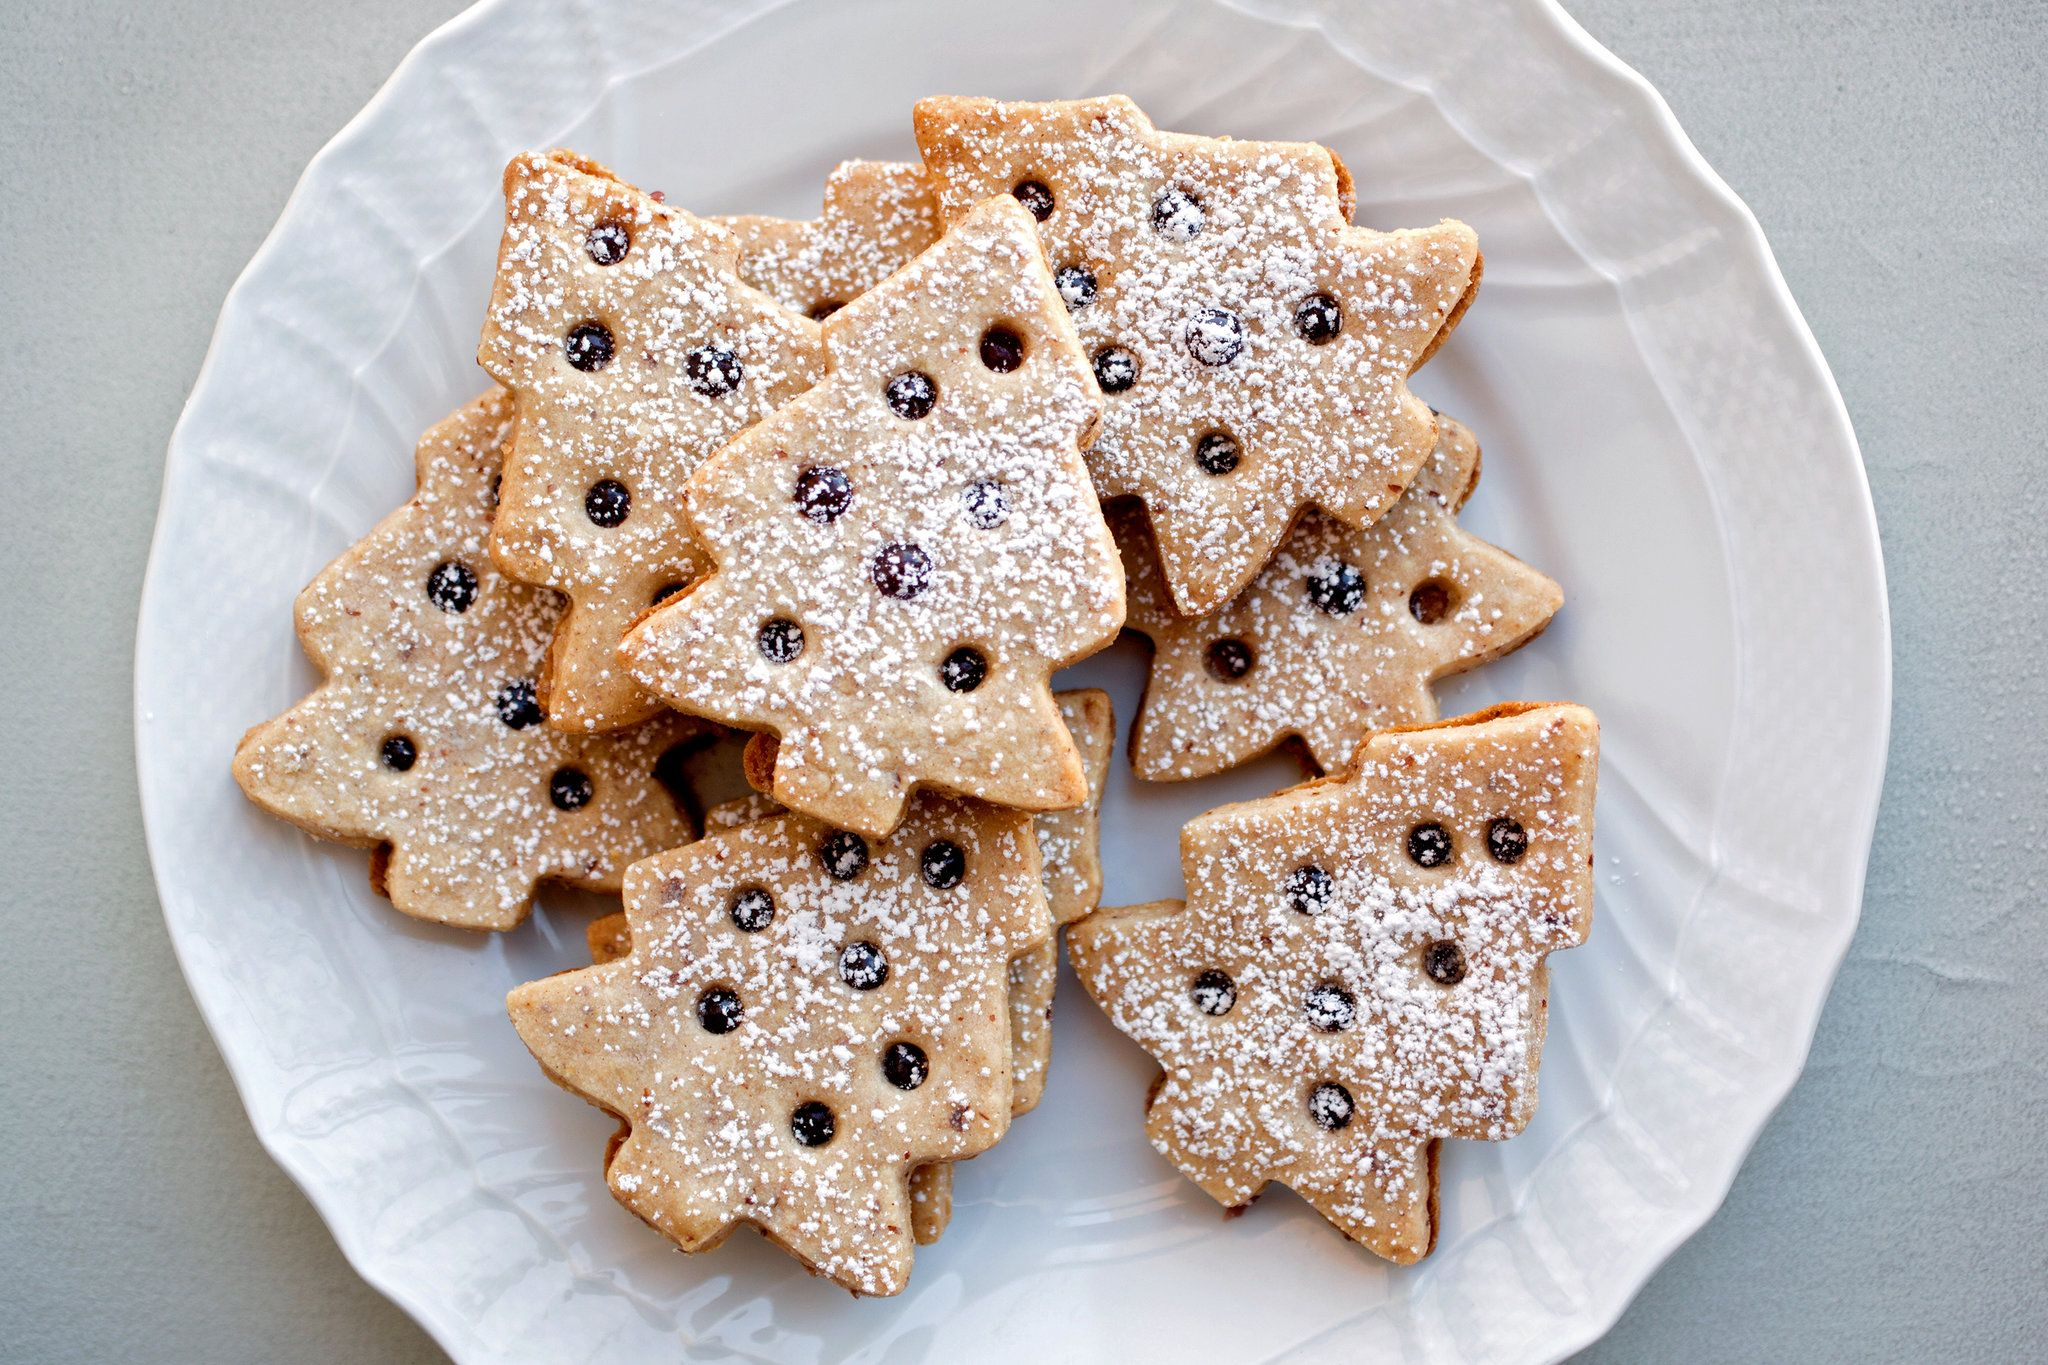 """These are a reworking of an old """"Joy of Cooking"""" recipe I learned from my friend in Atlanta, Allison Dykes They are the precious stars of her holiday cookie plate The dough can be slightly finicky but can be re-rolled and re-chilled several times so all the scraps get used"""